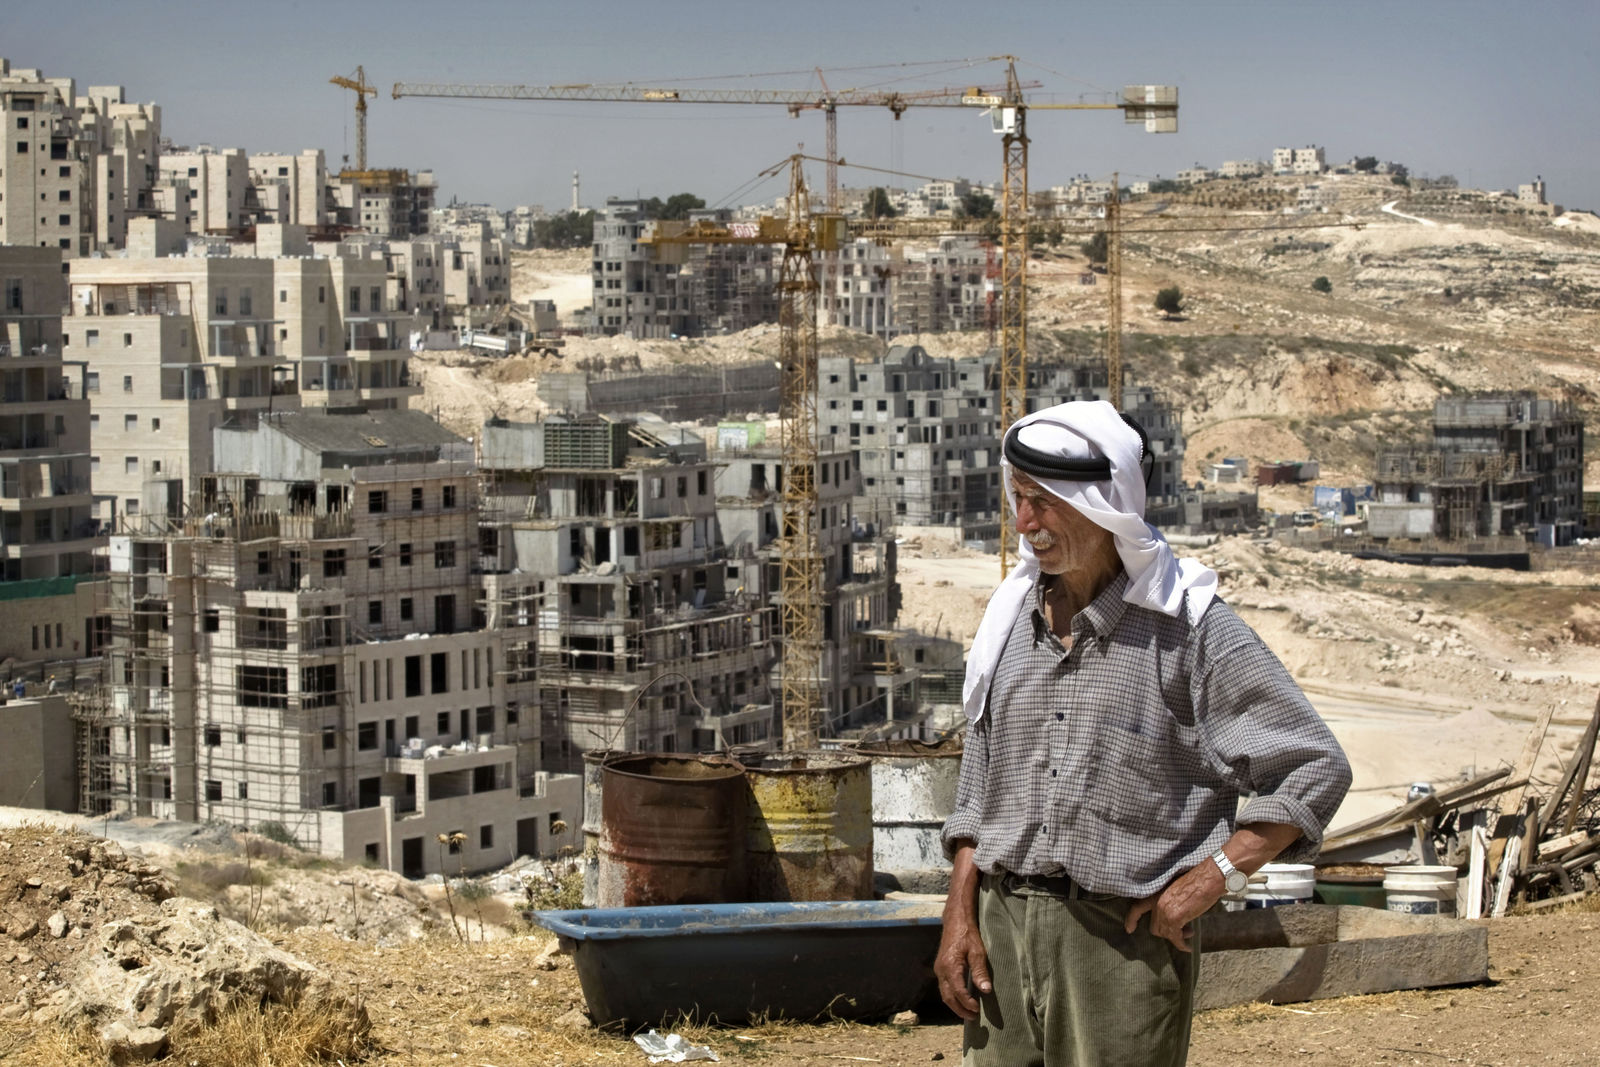 FILE - In this June 3, 2009 file photo, Palestinian Said Eid stands next to his house, not seen, as construction continues on a new housing development in the Jewish neighborhood of Har Homa in east Jerusalem, background.{ } (AP Photo/Sebastian Scheiner, File)